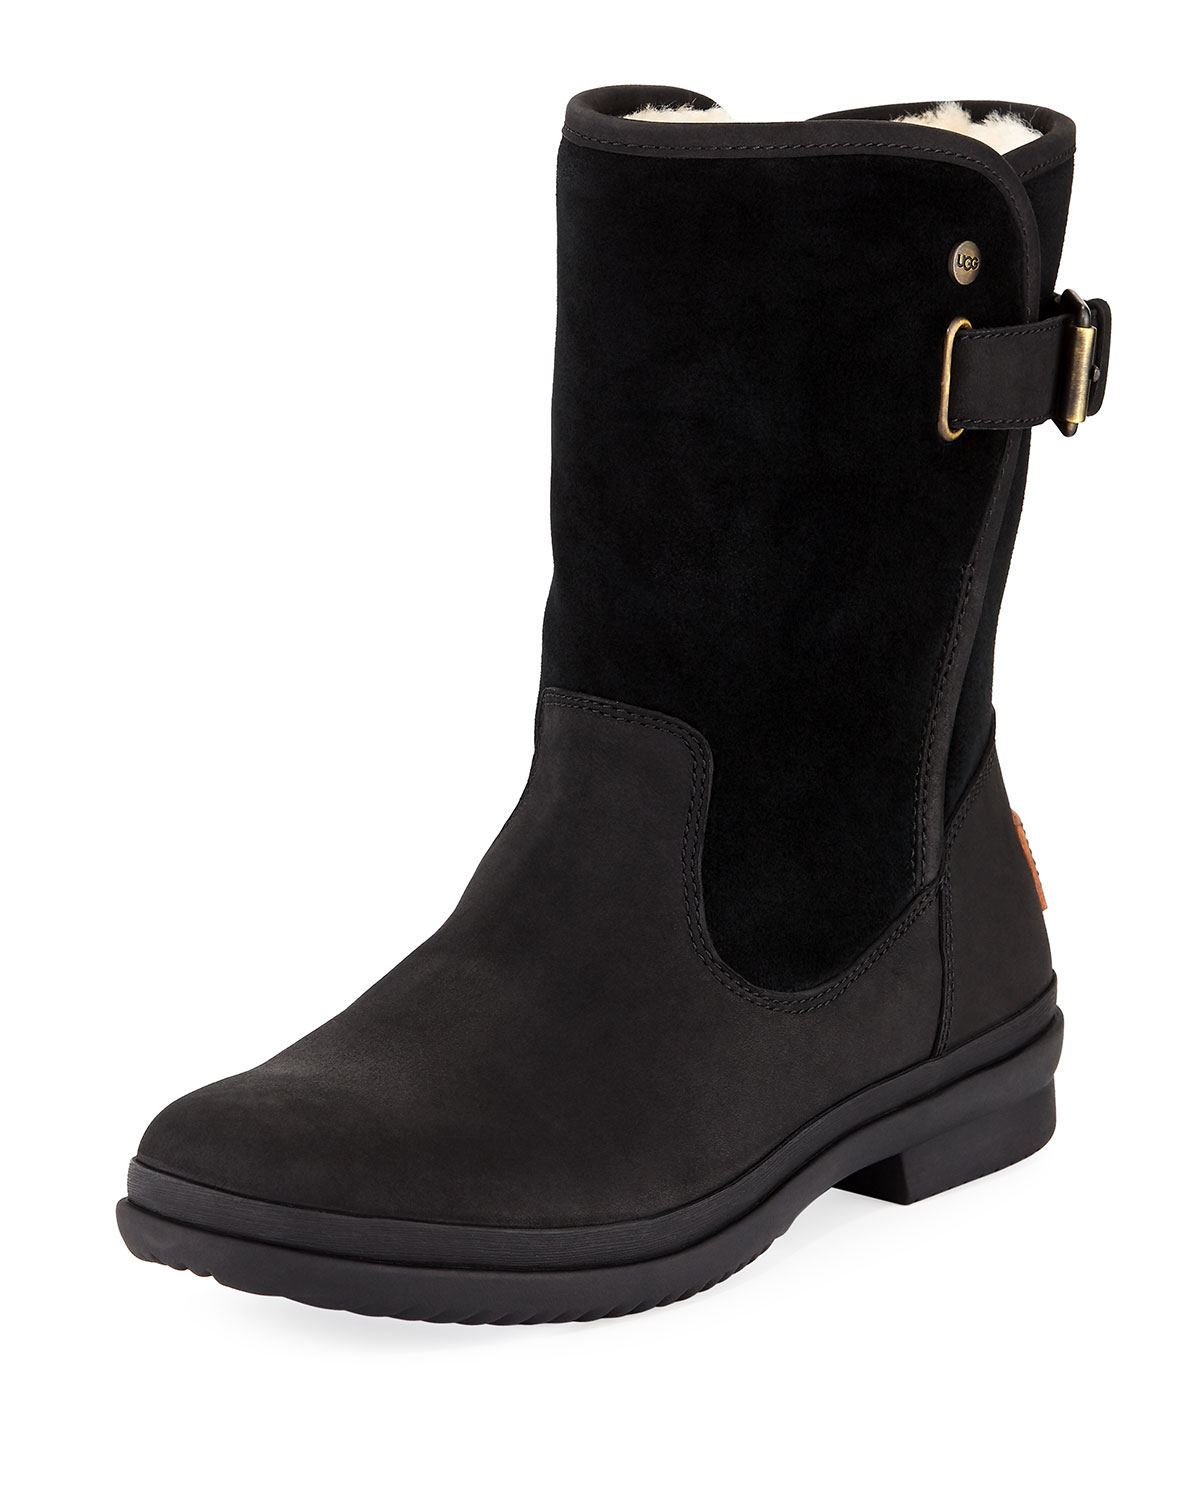 3cddf7952b5 Oren Mixed Leather Weather Boot